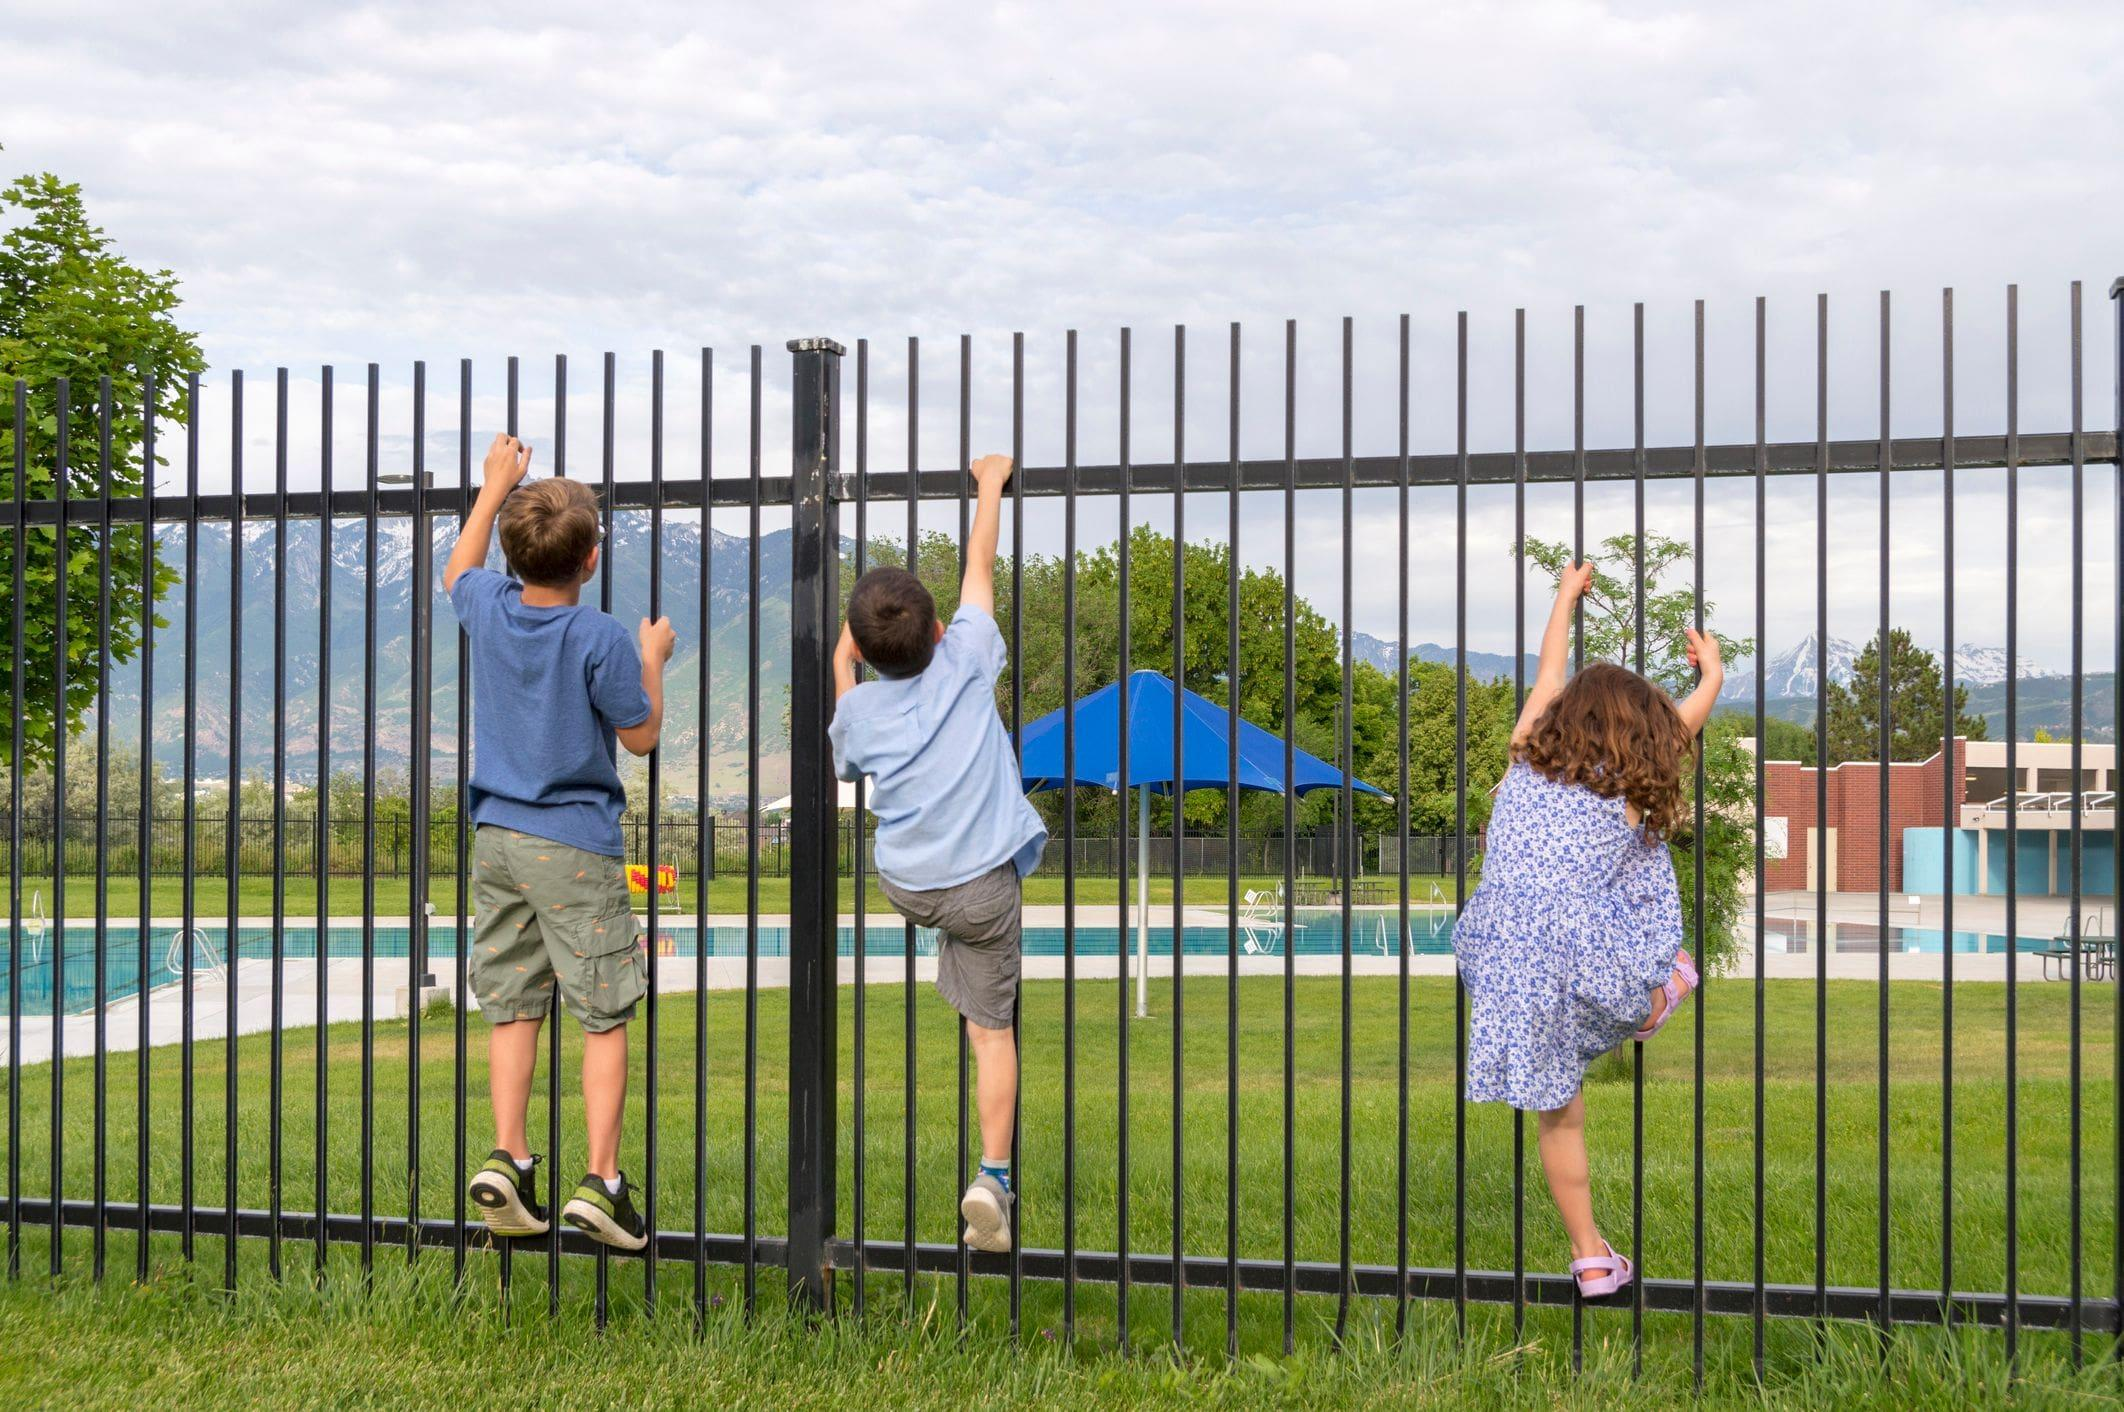 children trying to climb a gate to get to a restricted pool area